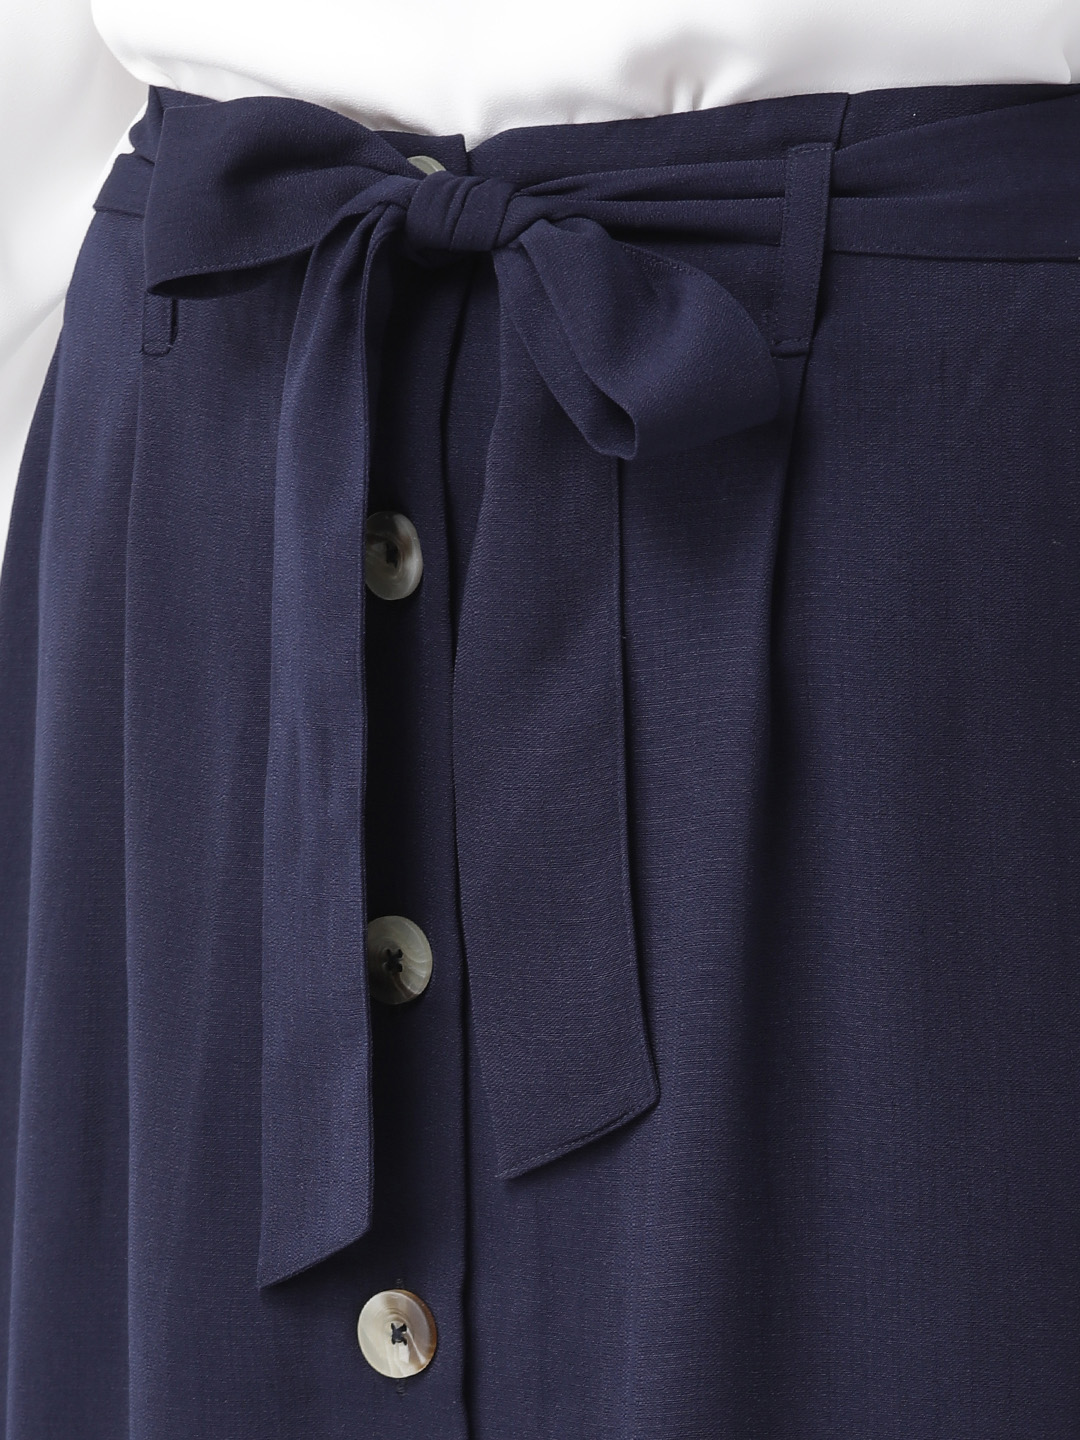 Shorts and Skirts-Navy Blue The Sweet Spot Button Down Skirt3